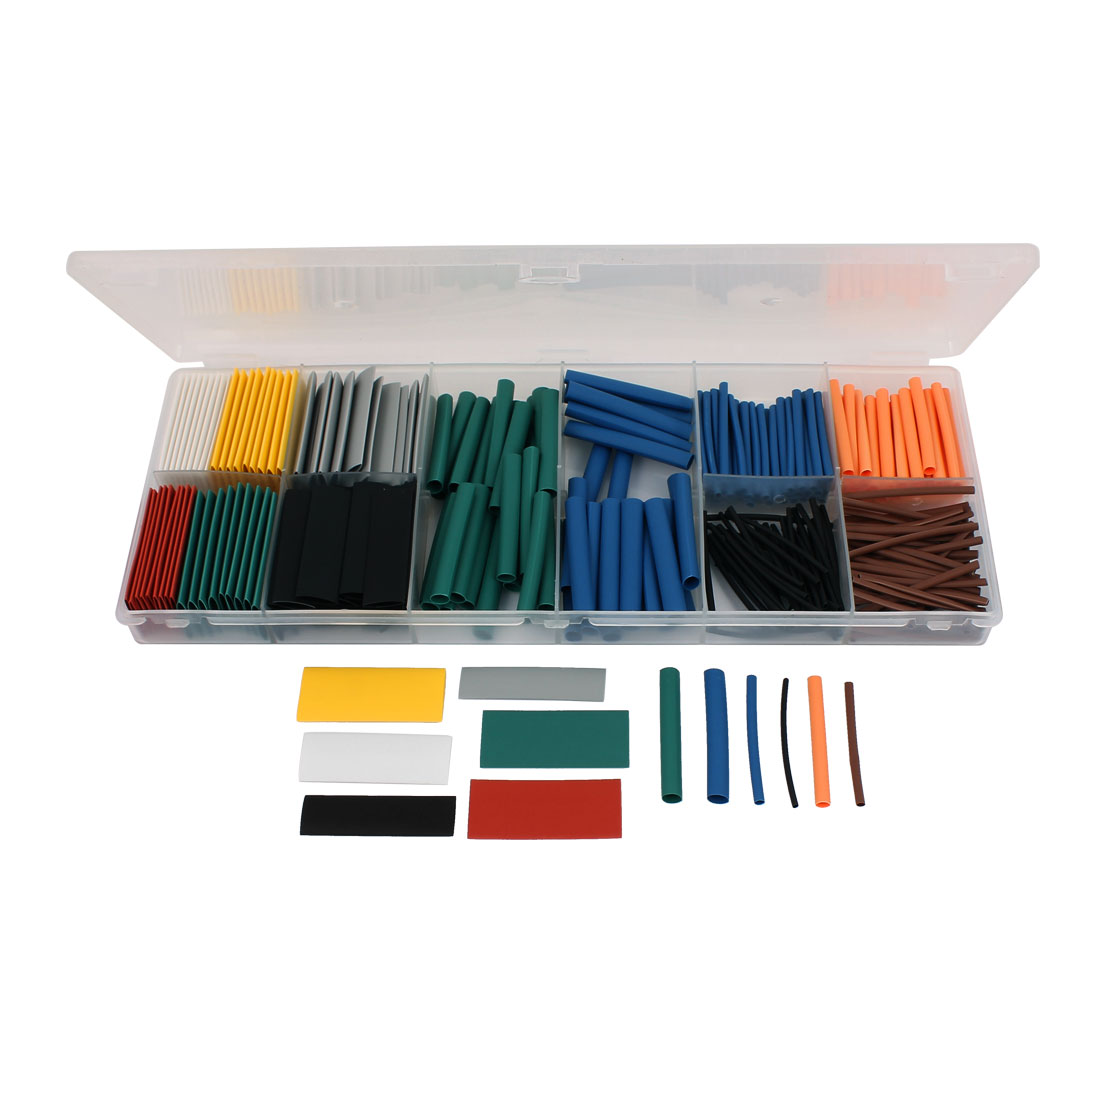 280 Pcs Heat Shrink Cable Tubing Tube Sleeving Wrap Assorted Sizes Kit B Type